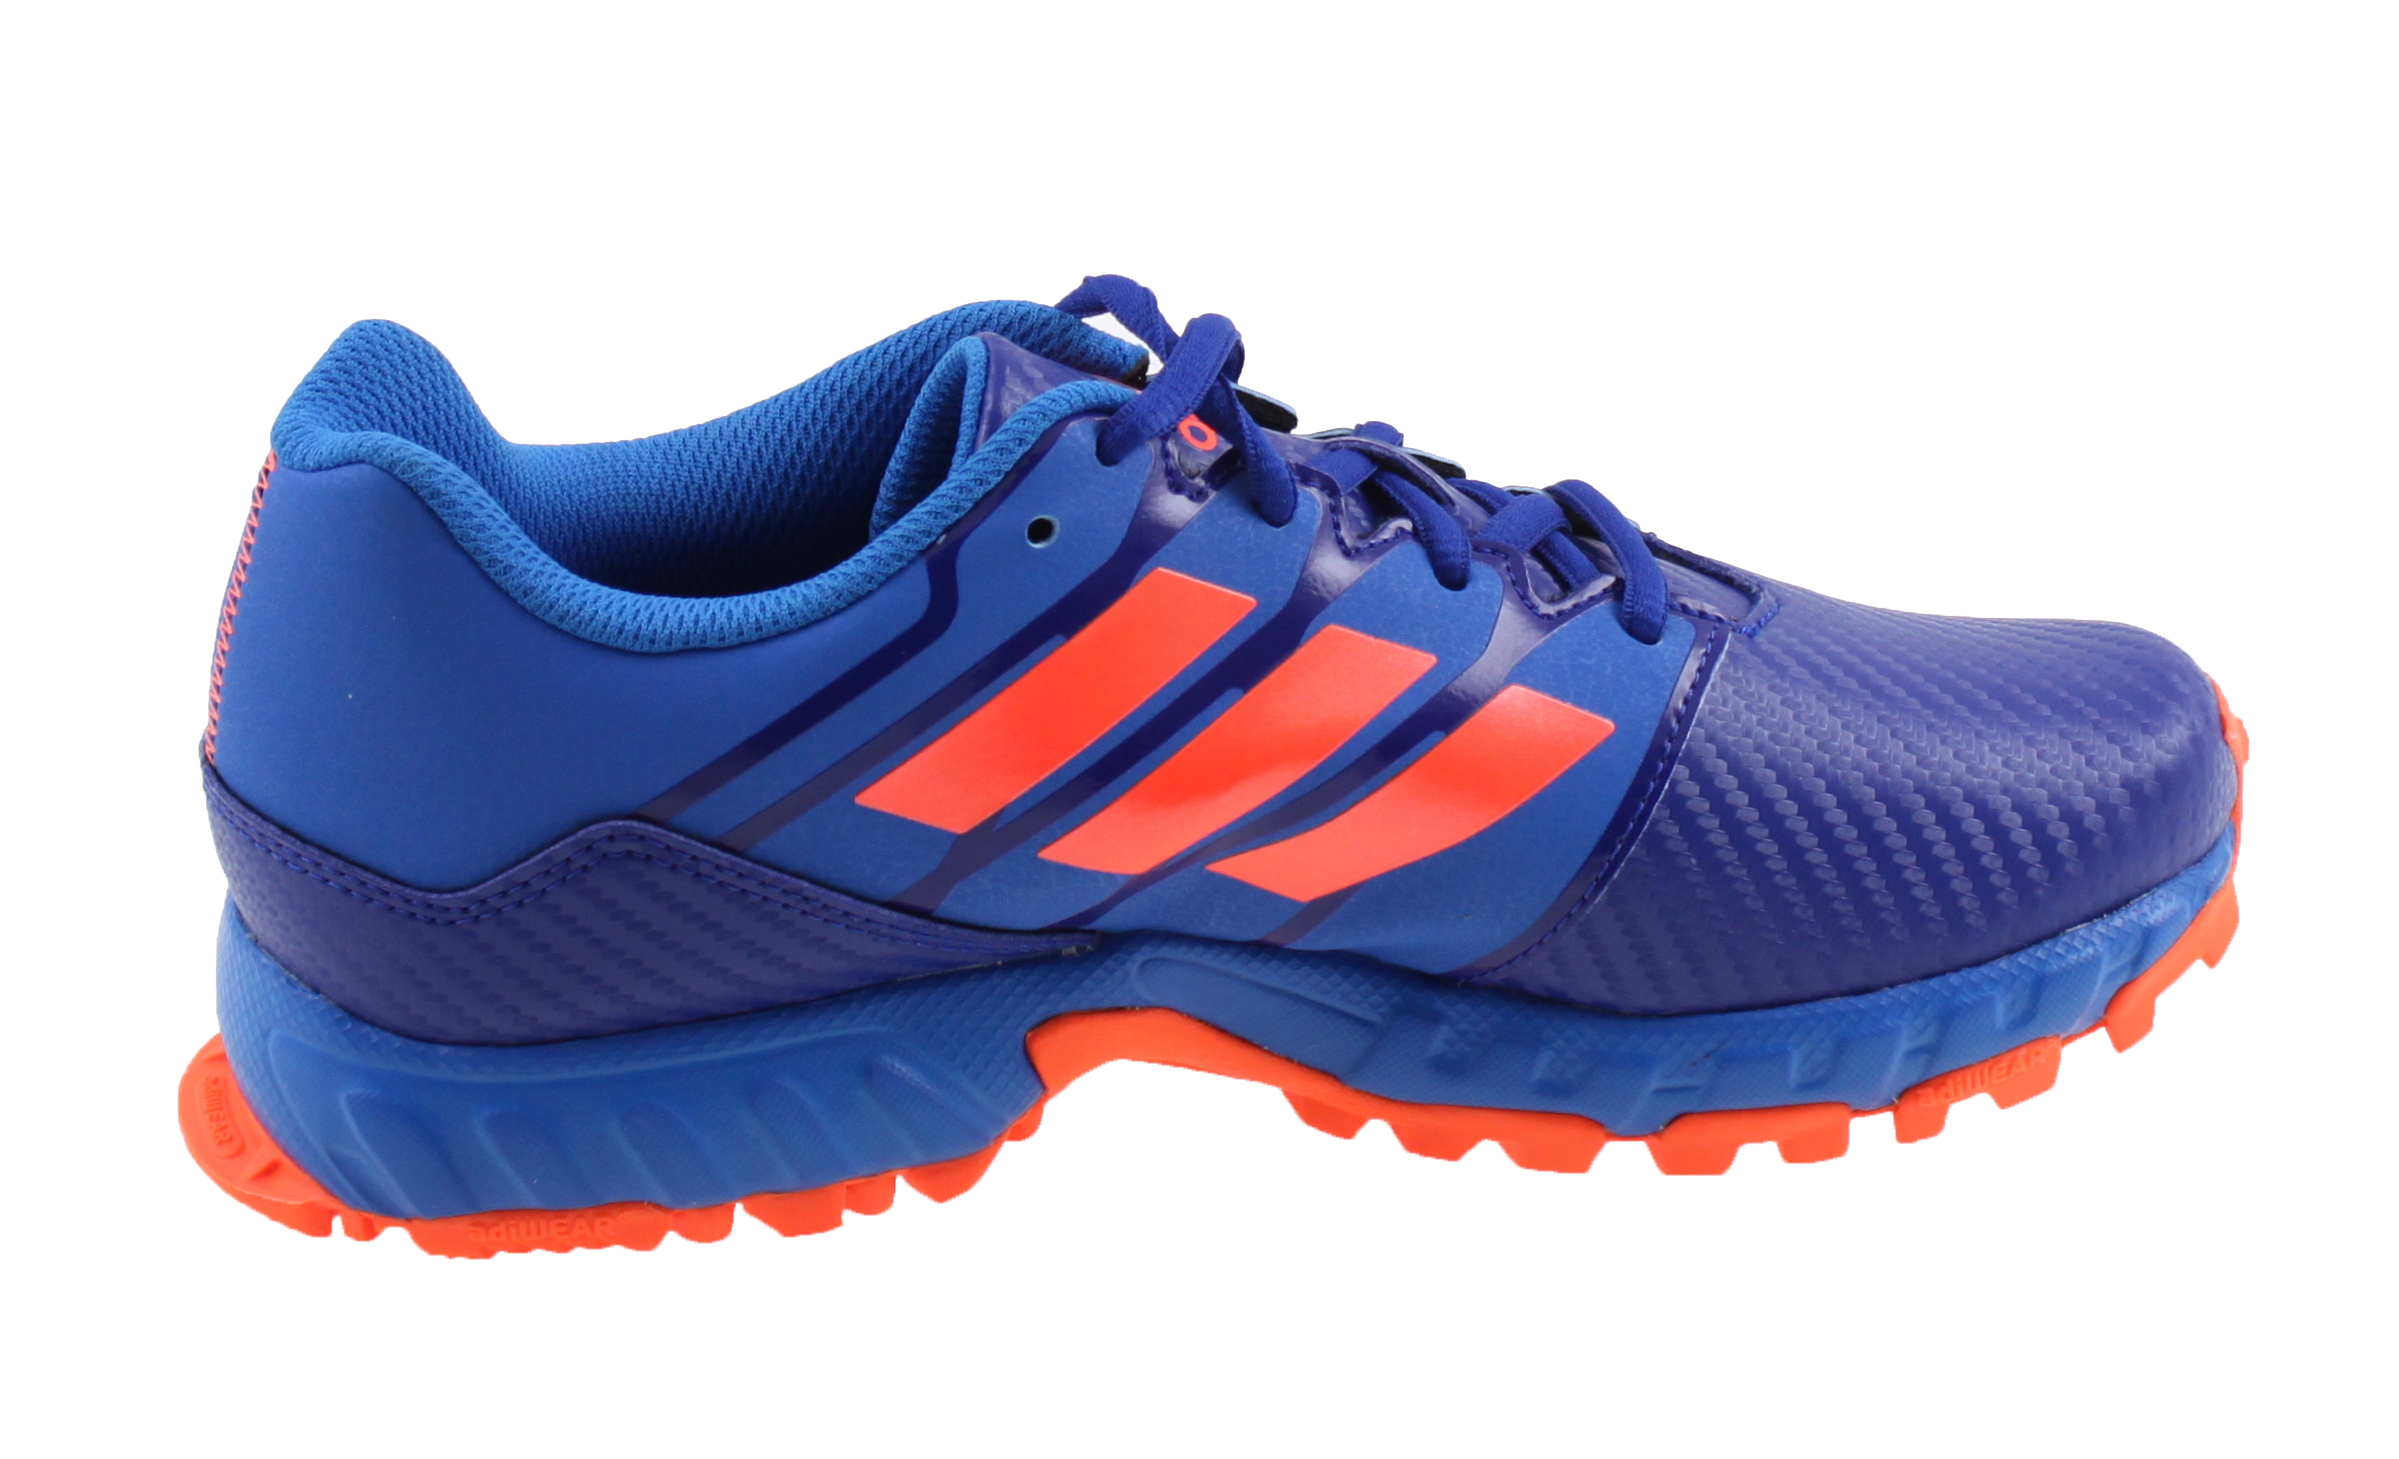 Chaussures De Hockey Lux sp6wb0